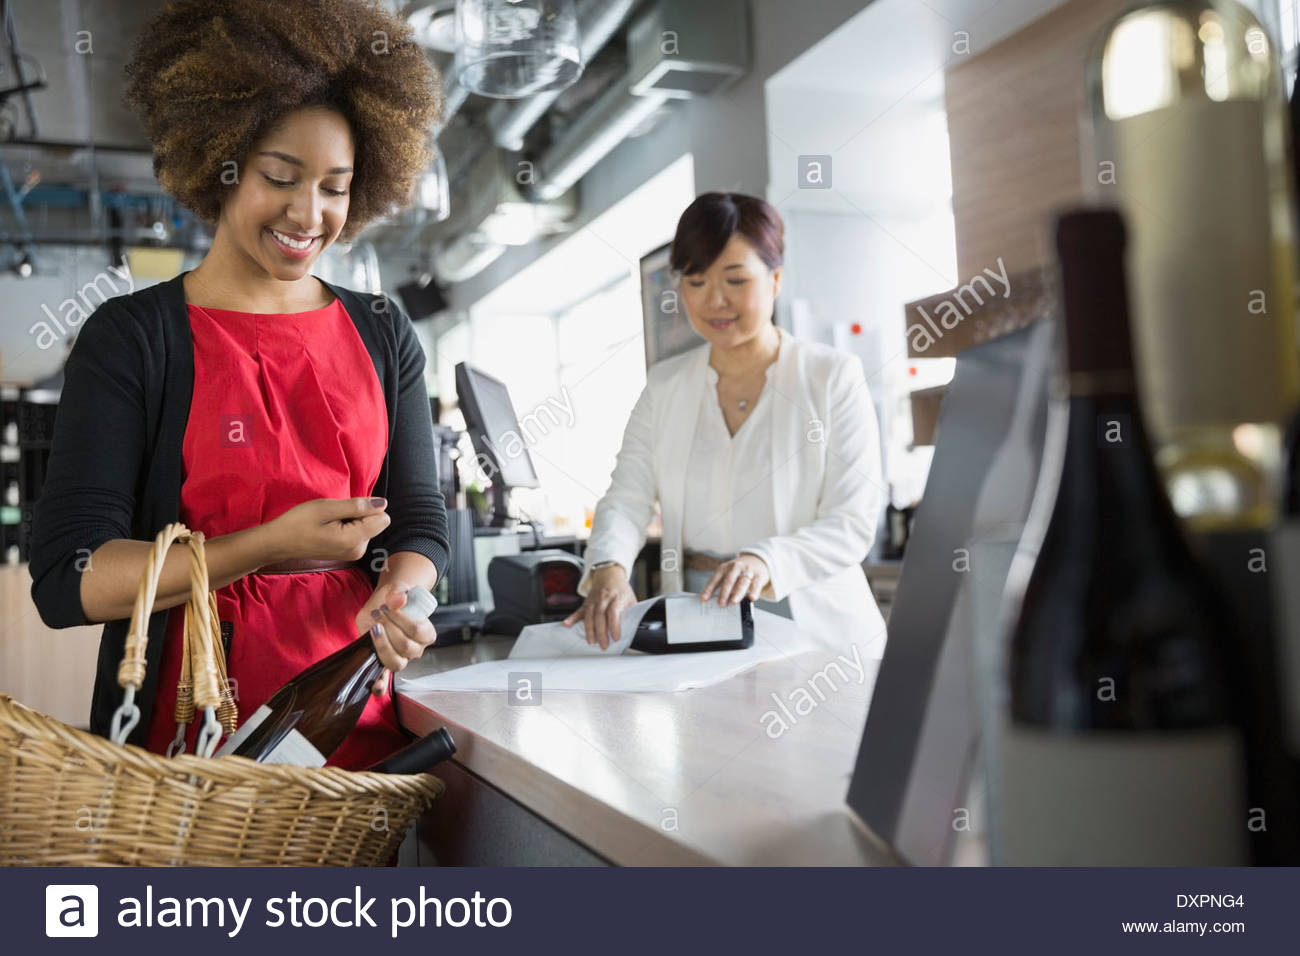 Woman purchasing wine in store - Stock Image